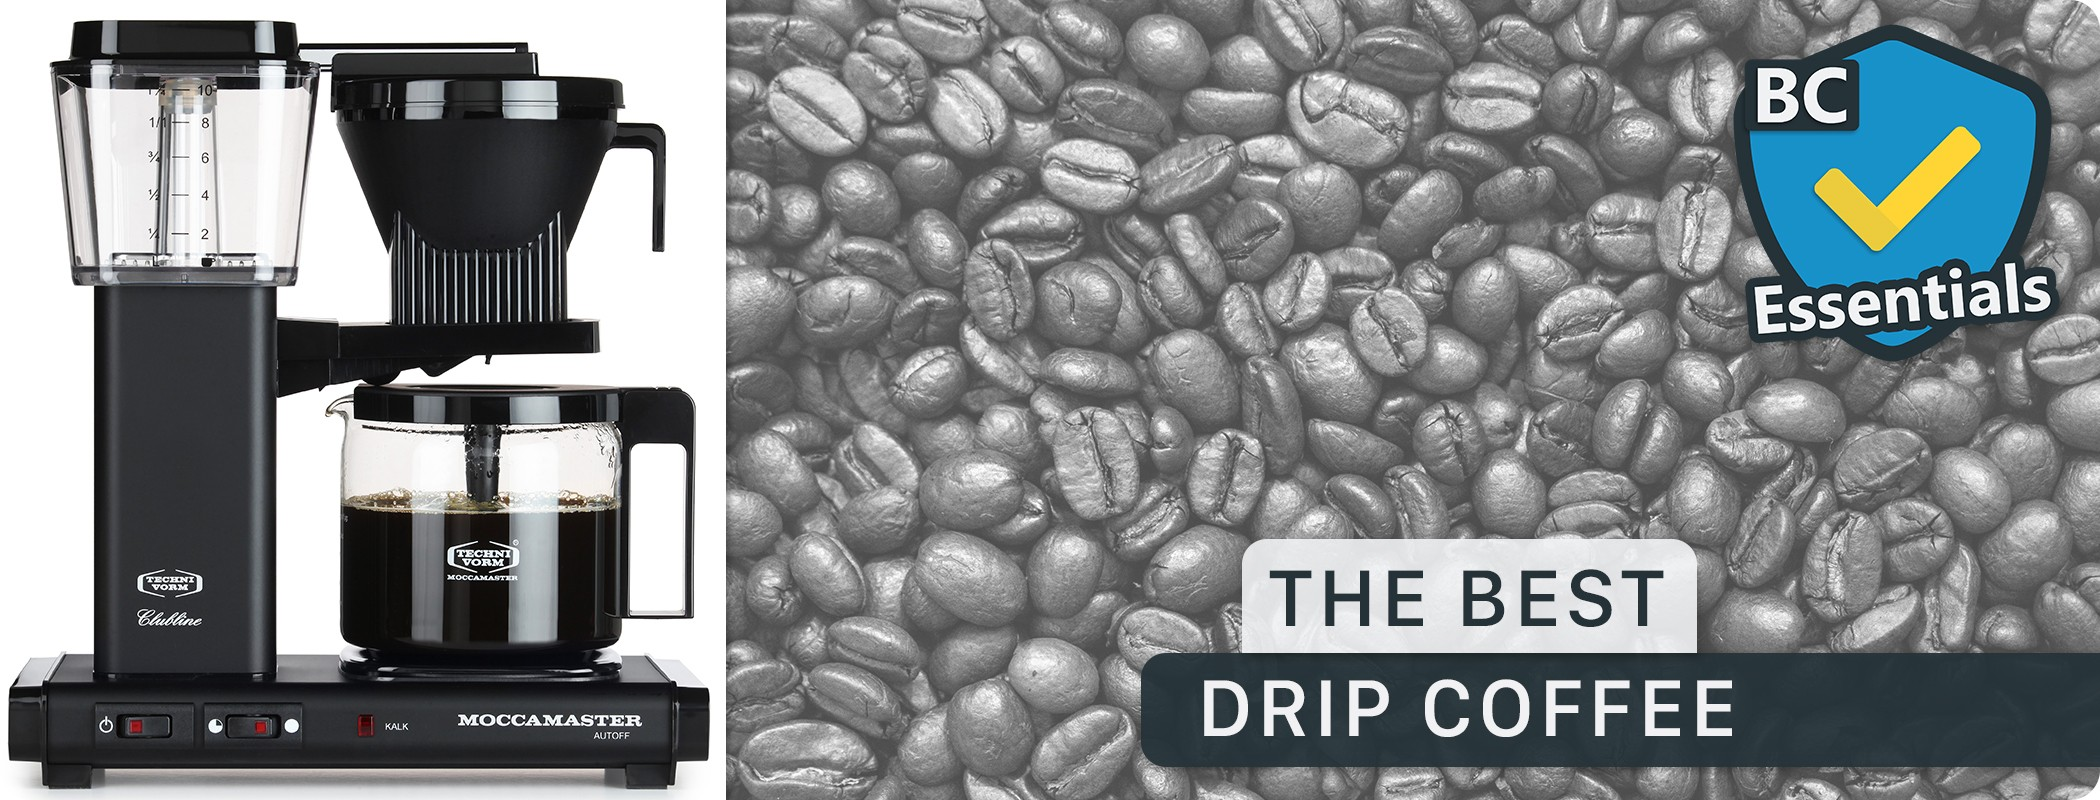 Drip Coffee Essentials